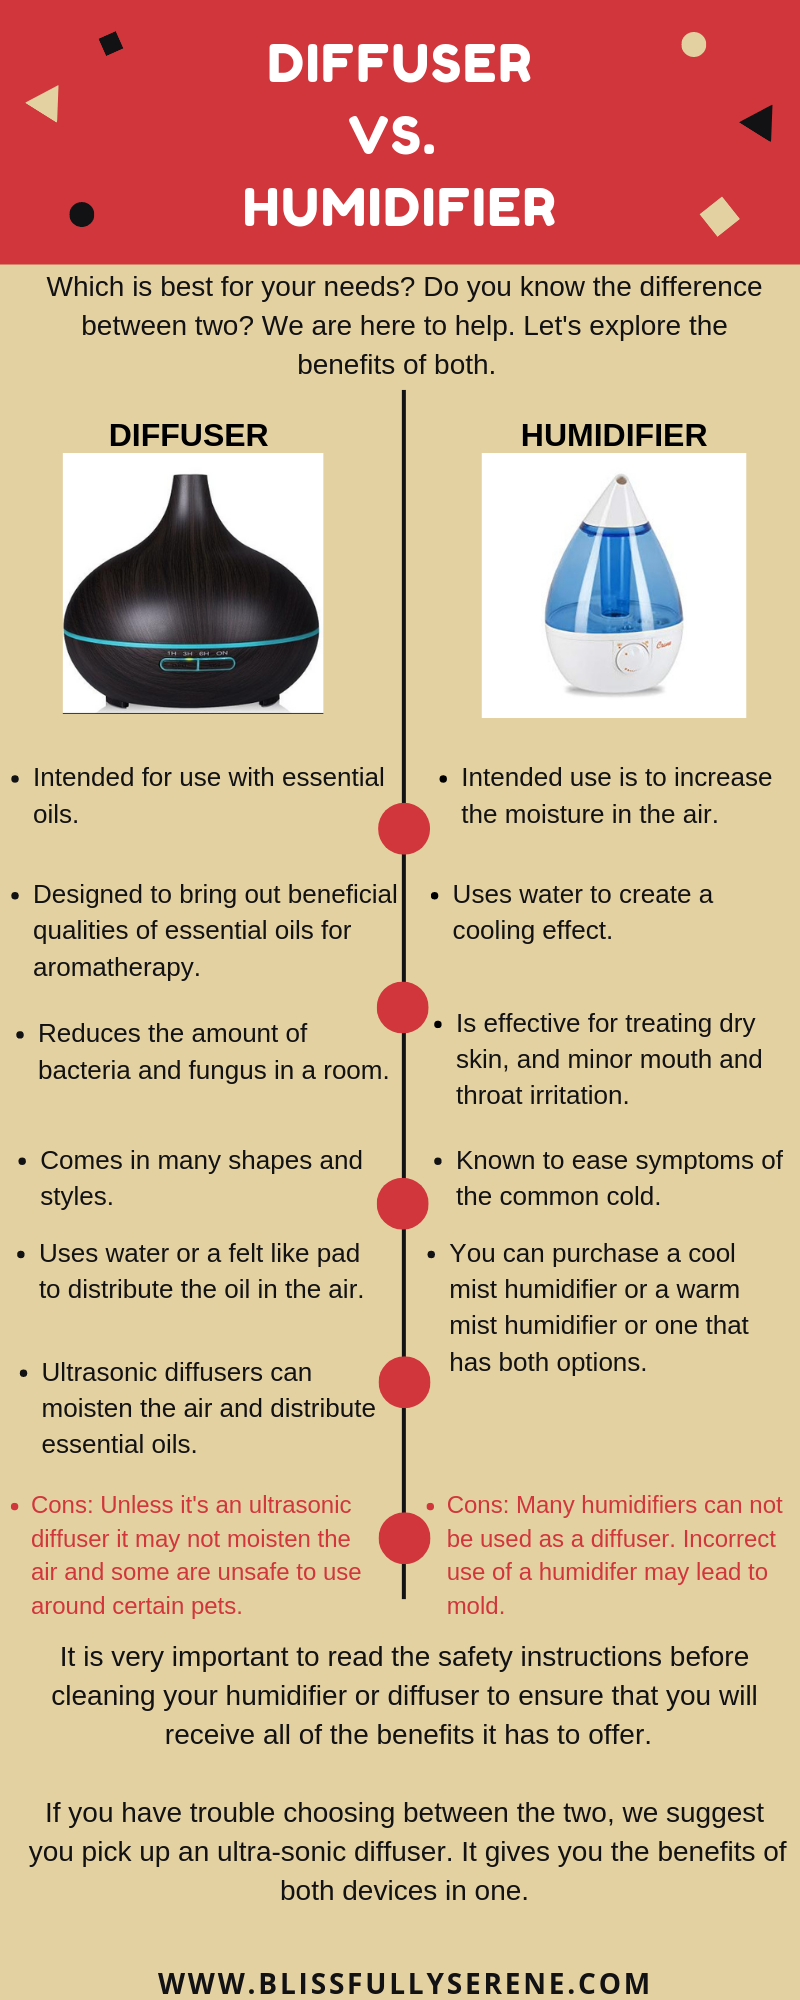 Diffuser vs. Humidifier: Which One Is Right For You?